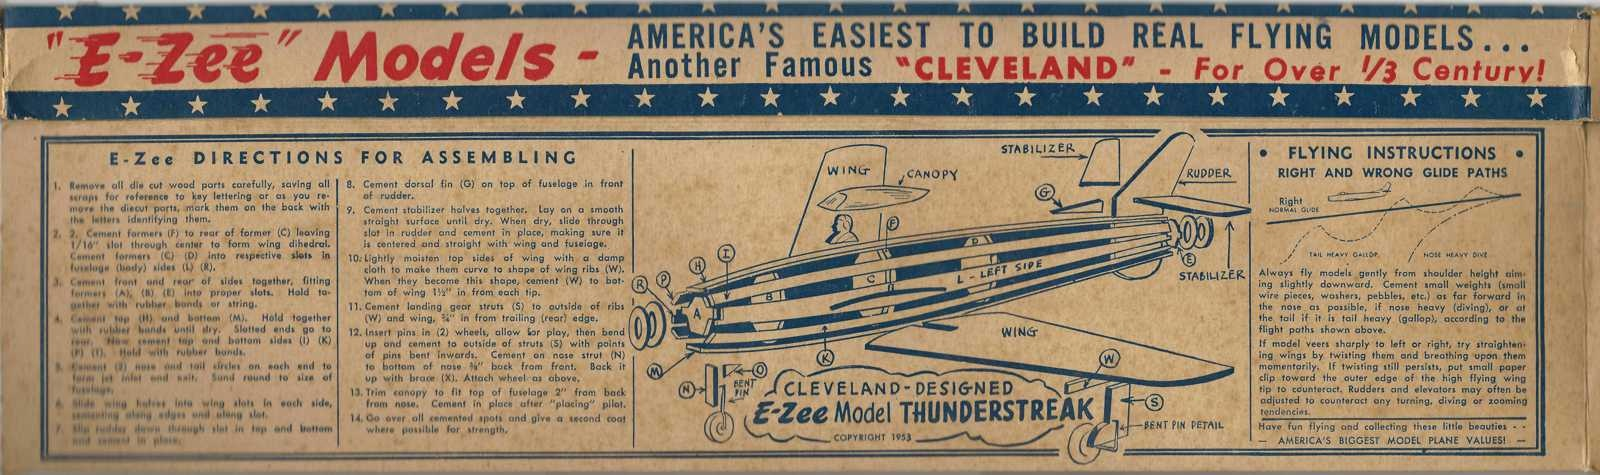 https://0201.nccdn.net/1_2/000/000/0ec/7d4/Cleveland-E-Zee--F-84F-Thunderstreak-Box-Rear-1600x475.jpg